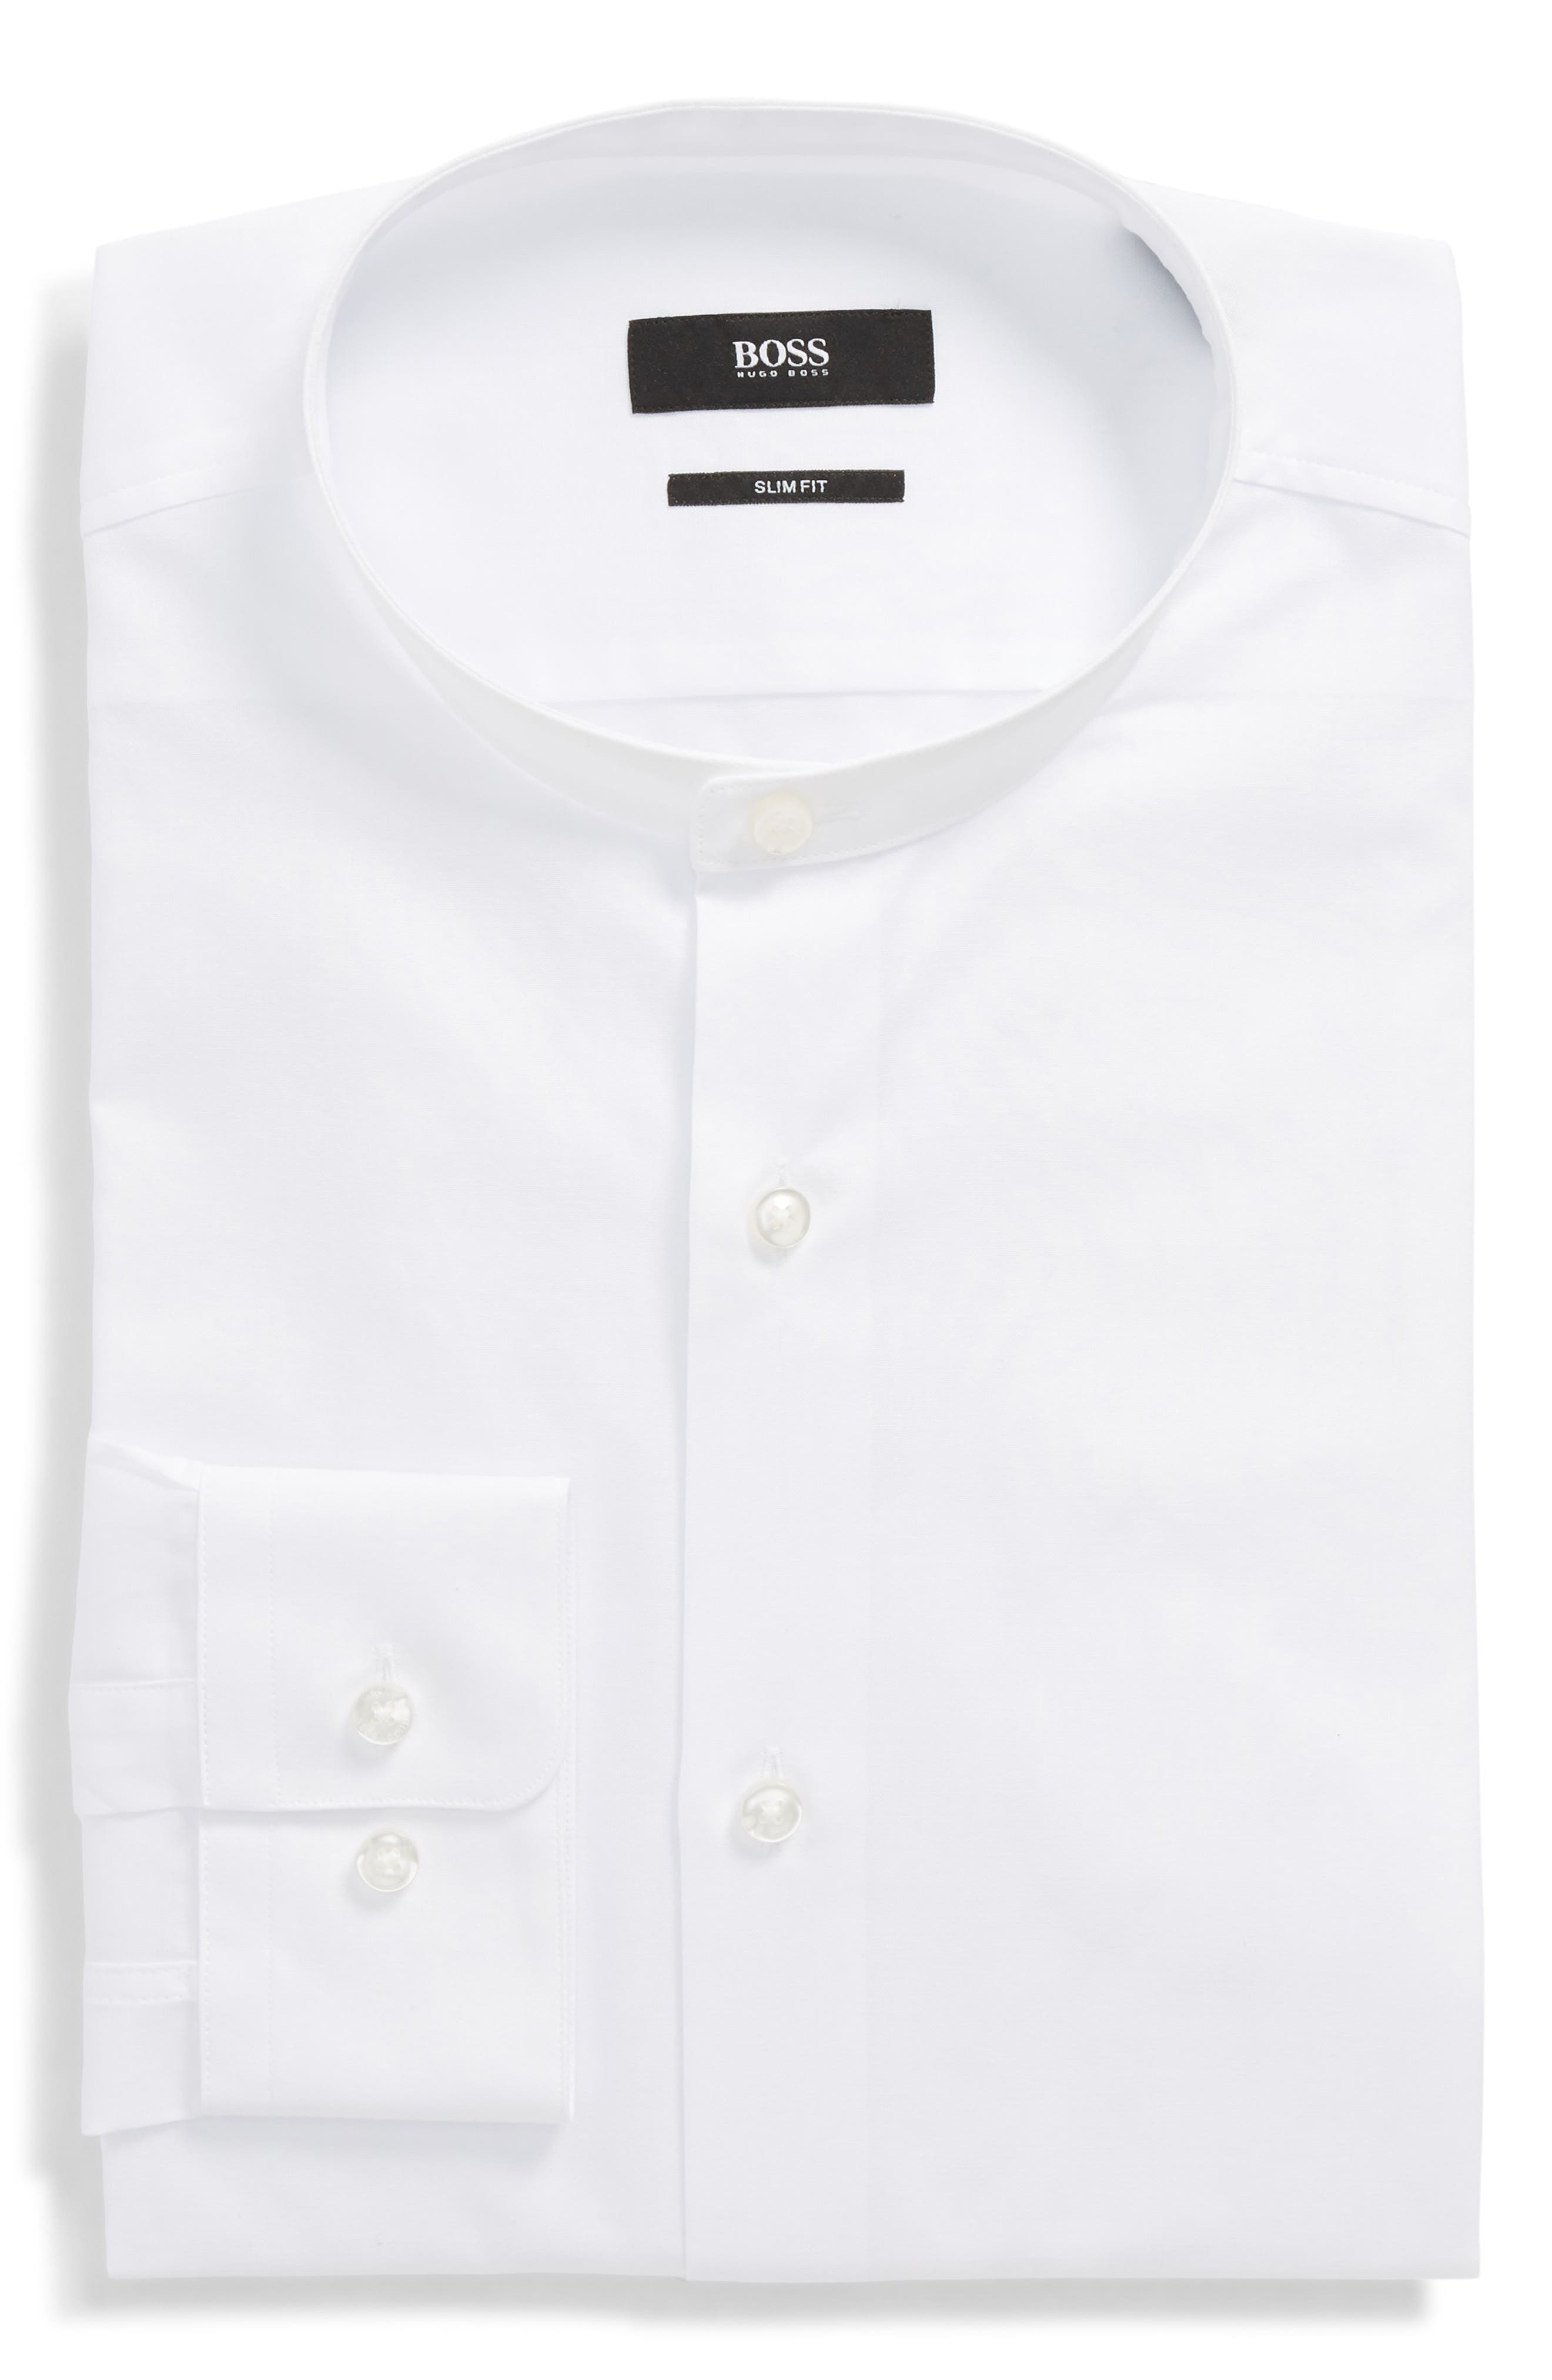 Jordi Slim Fit Solid Band Collar Dress Shirt,                             Main thumbnail 1, color,                             White